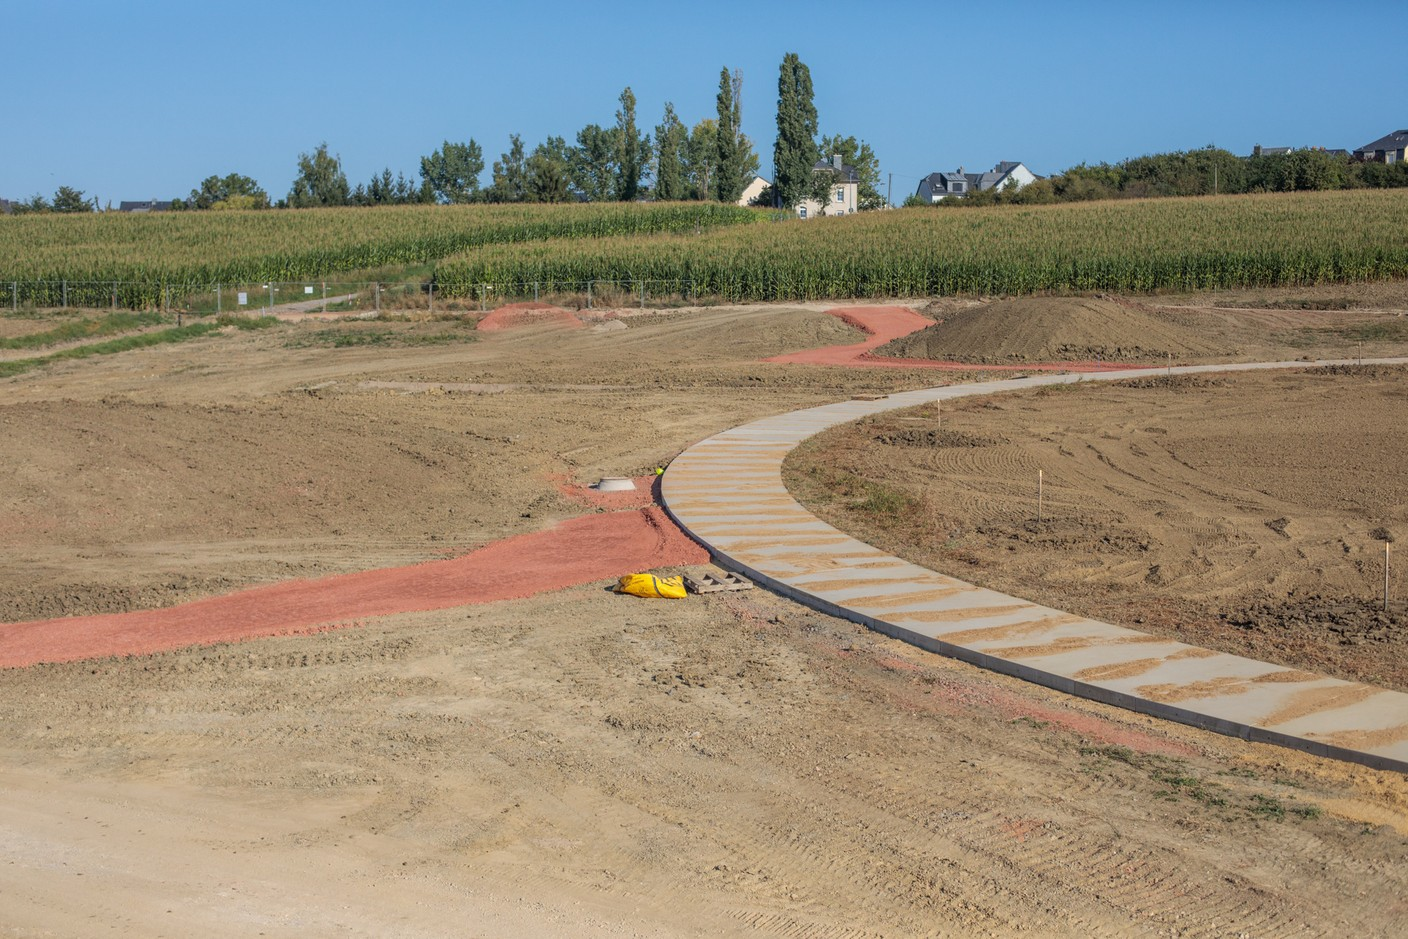 In total, the network of branching paths will be 4.5 km long. (Photo: Matic Zorman / Maison Moderne)